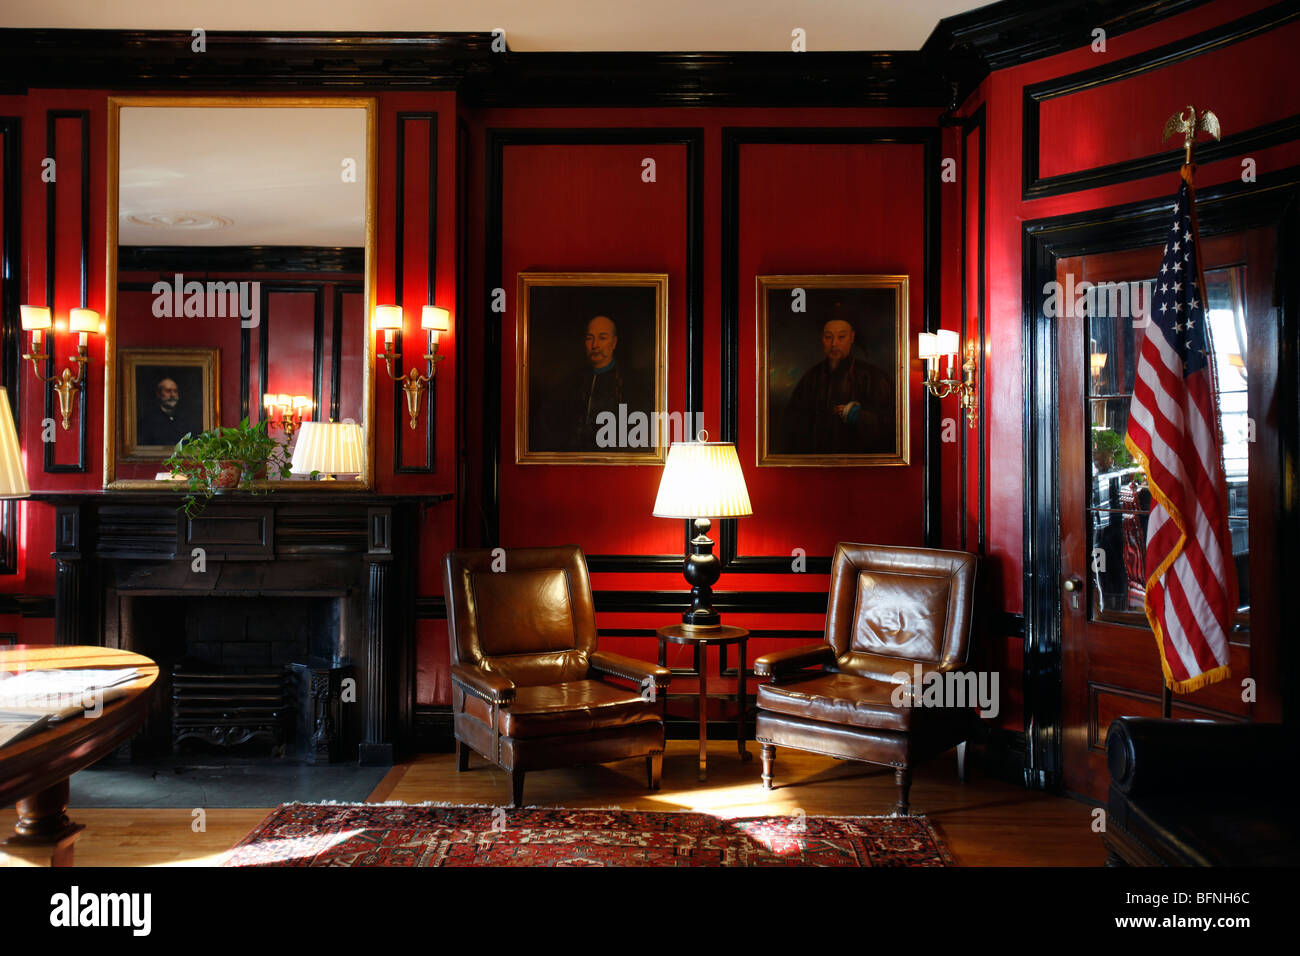 The Union Club, Boston, Massachusetts Stock Photo, Royalty Free ...